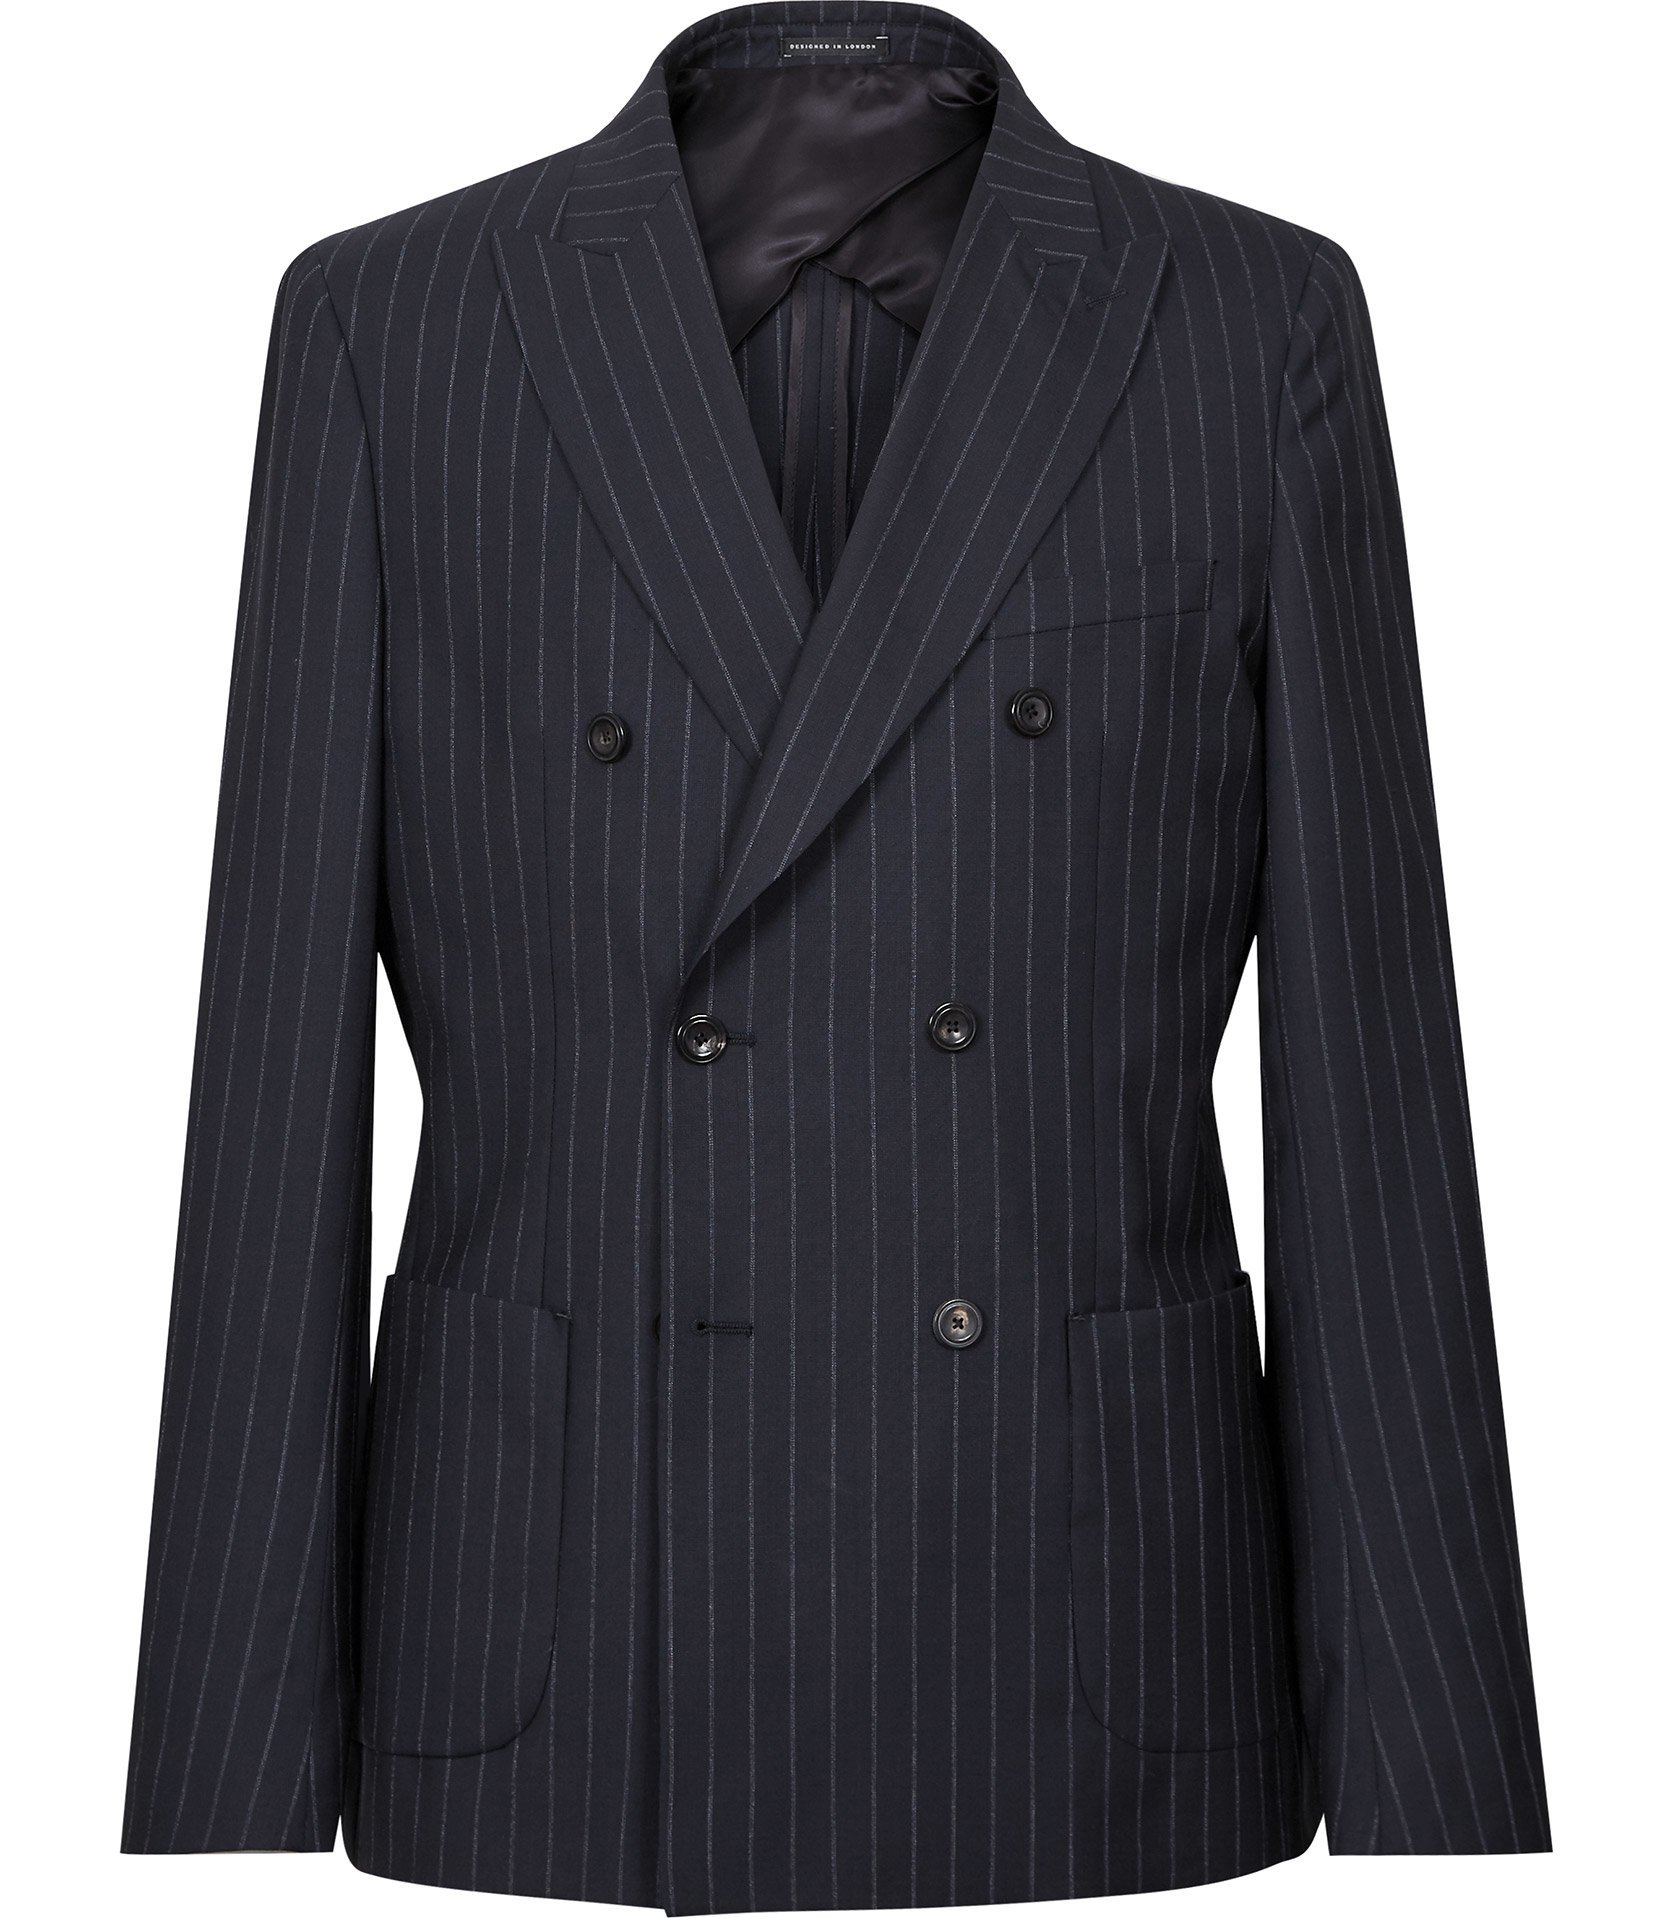 Reiss Navy Double-Breasted Blazer